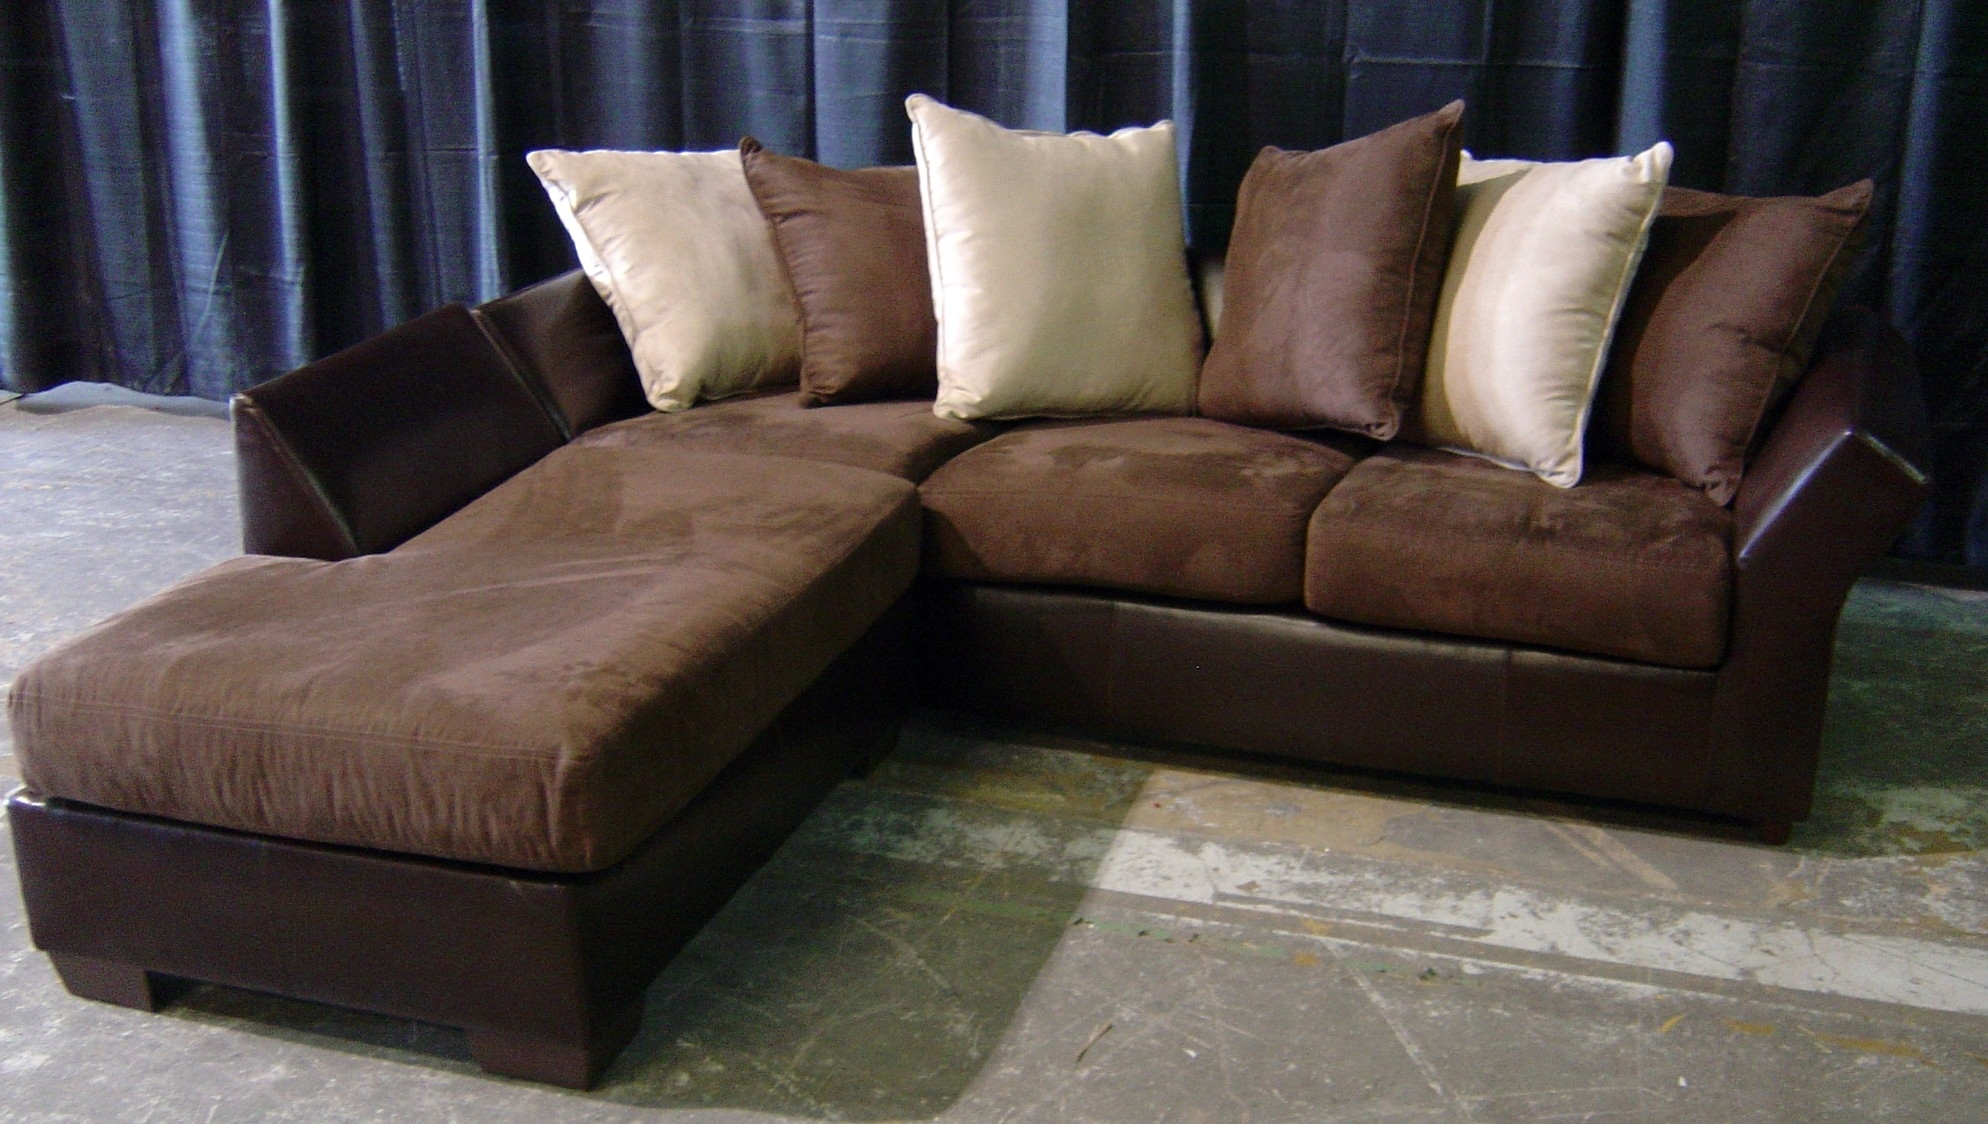 Awesome Leather And Suede Sectional Sofa 63 For With Leather And Pertaining To Leather And Suede Sectional Sofas (View 6 of 10)